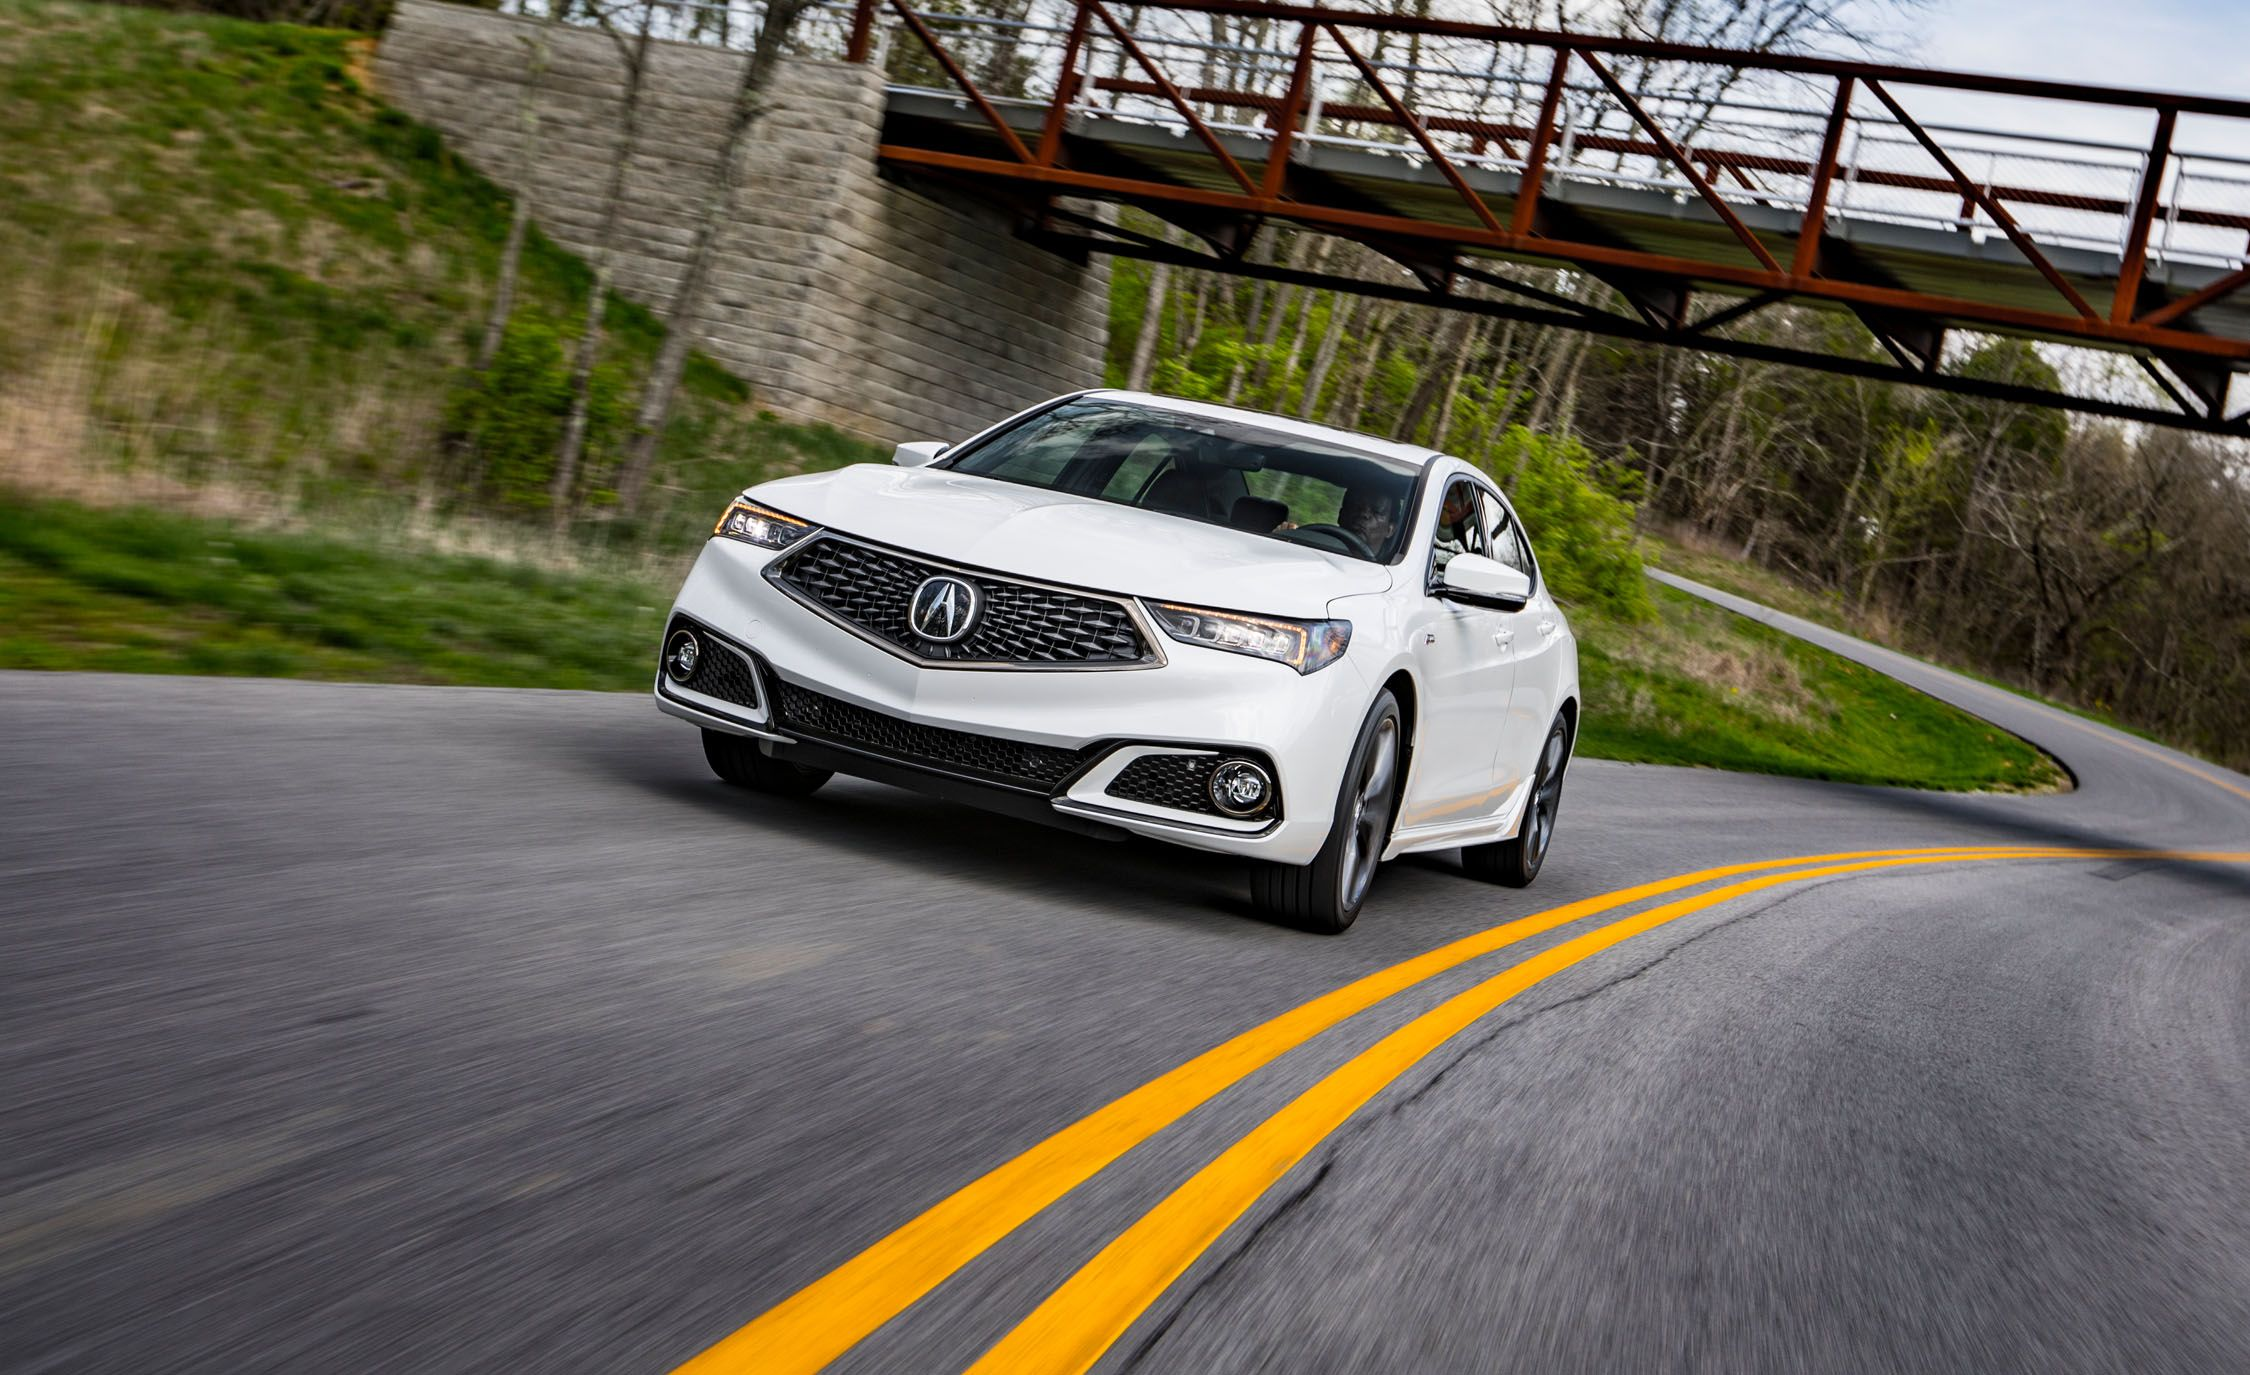 Acura tlx a spec 2018 sports kit new acura white tlx japanese cars acura cars wallpapers pinterest japanese cars cars and car wallpapers